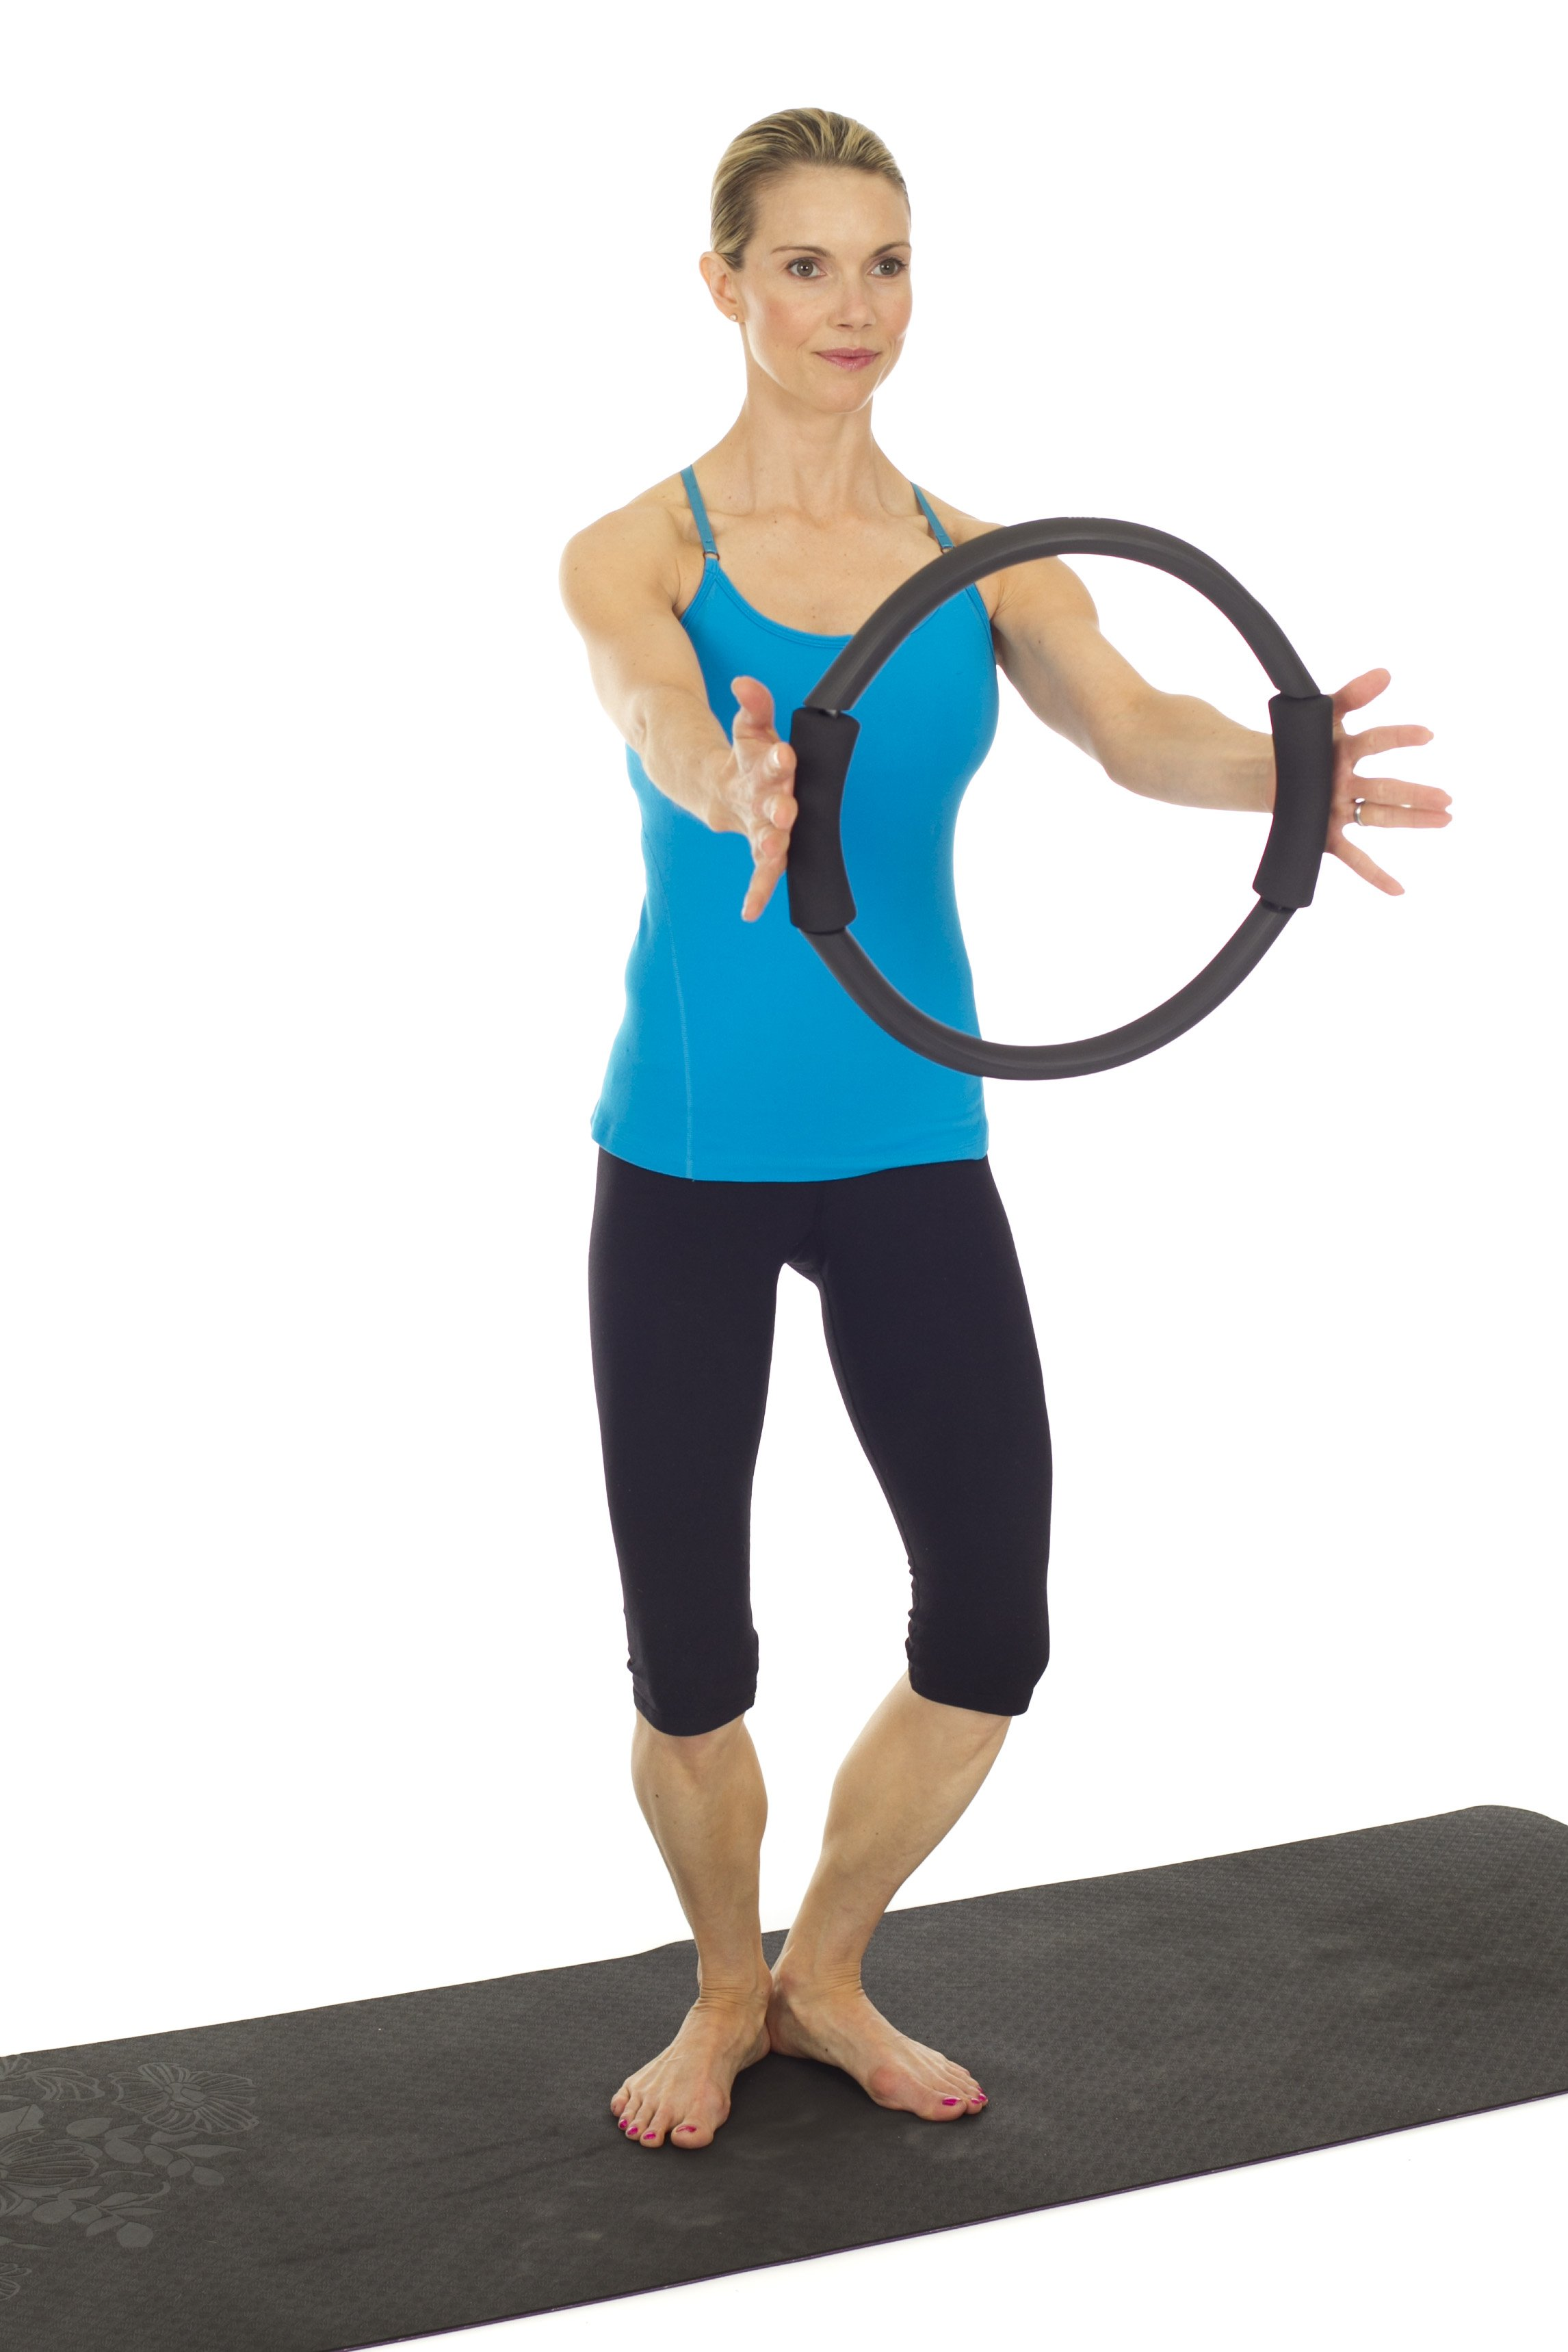 You don't need a magic circle for these moves you can use a yoga